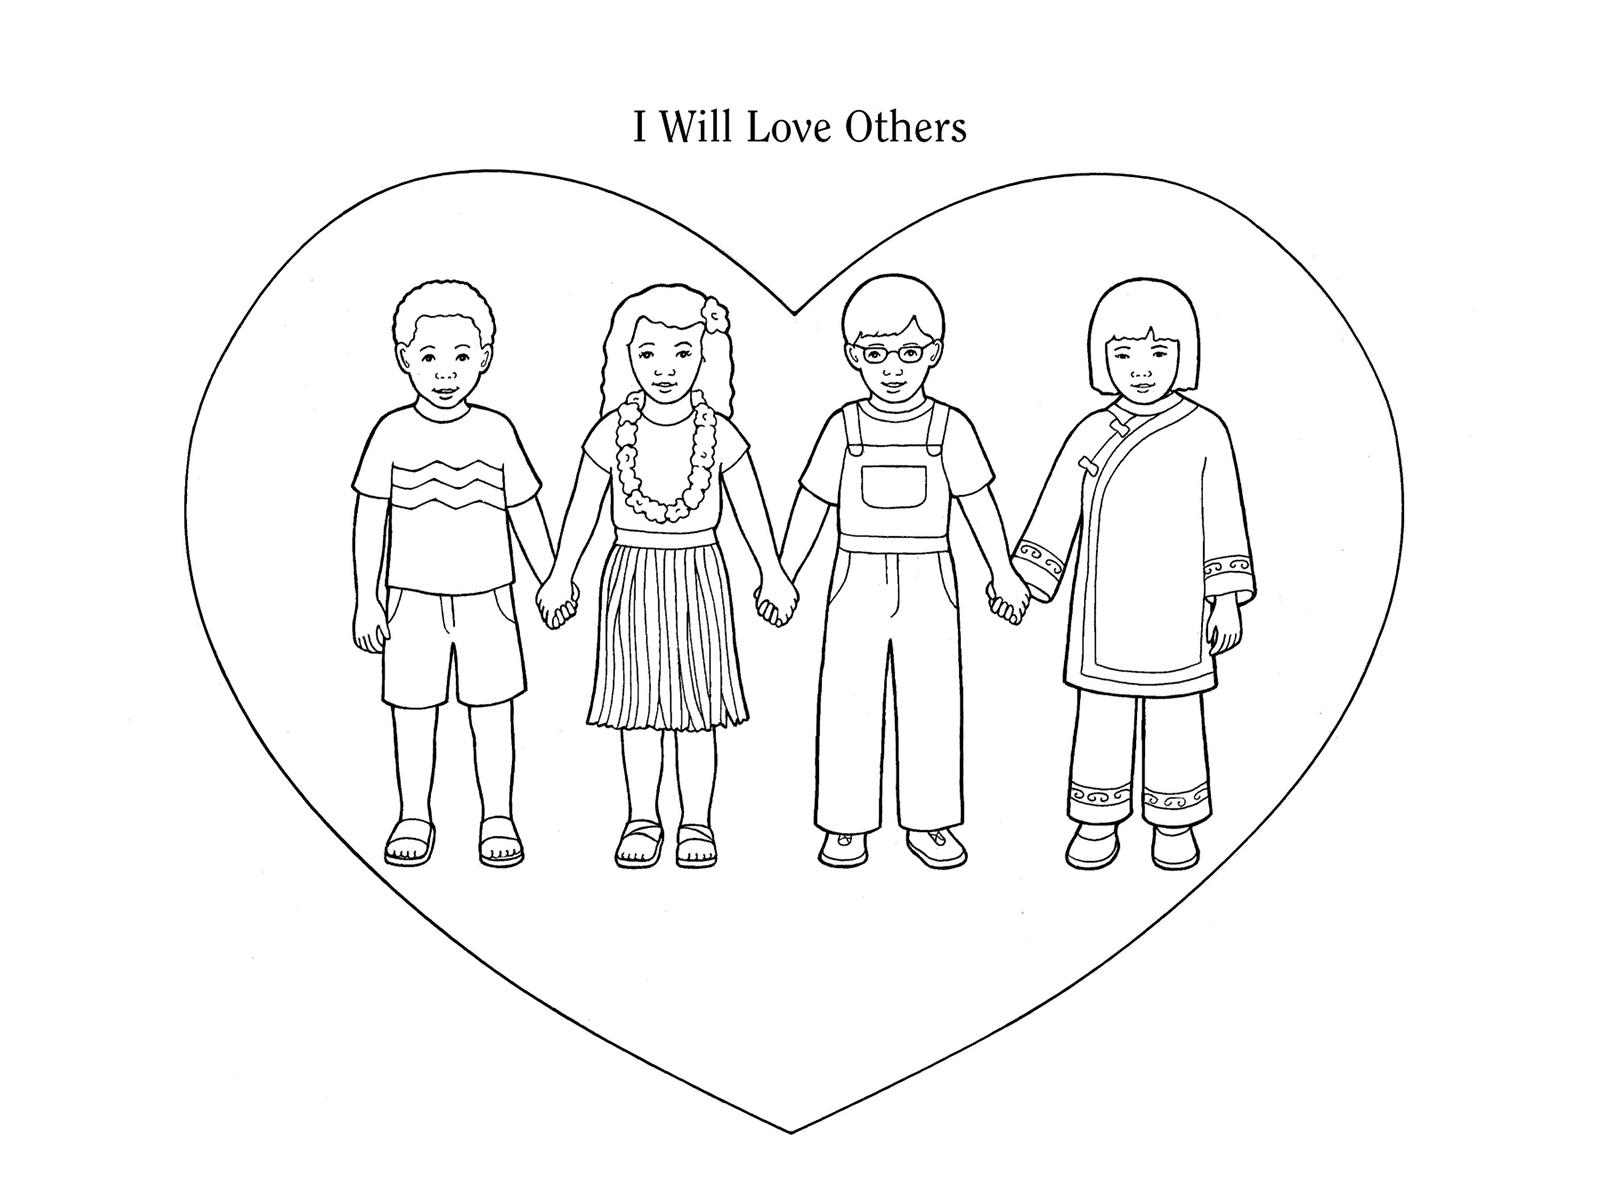 Nursery Manual Page 79: I Will Love Others